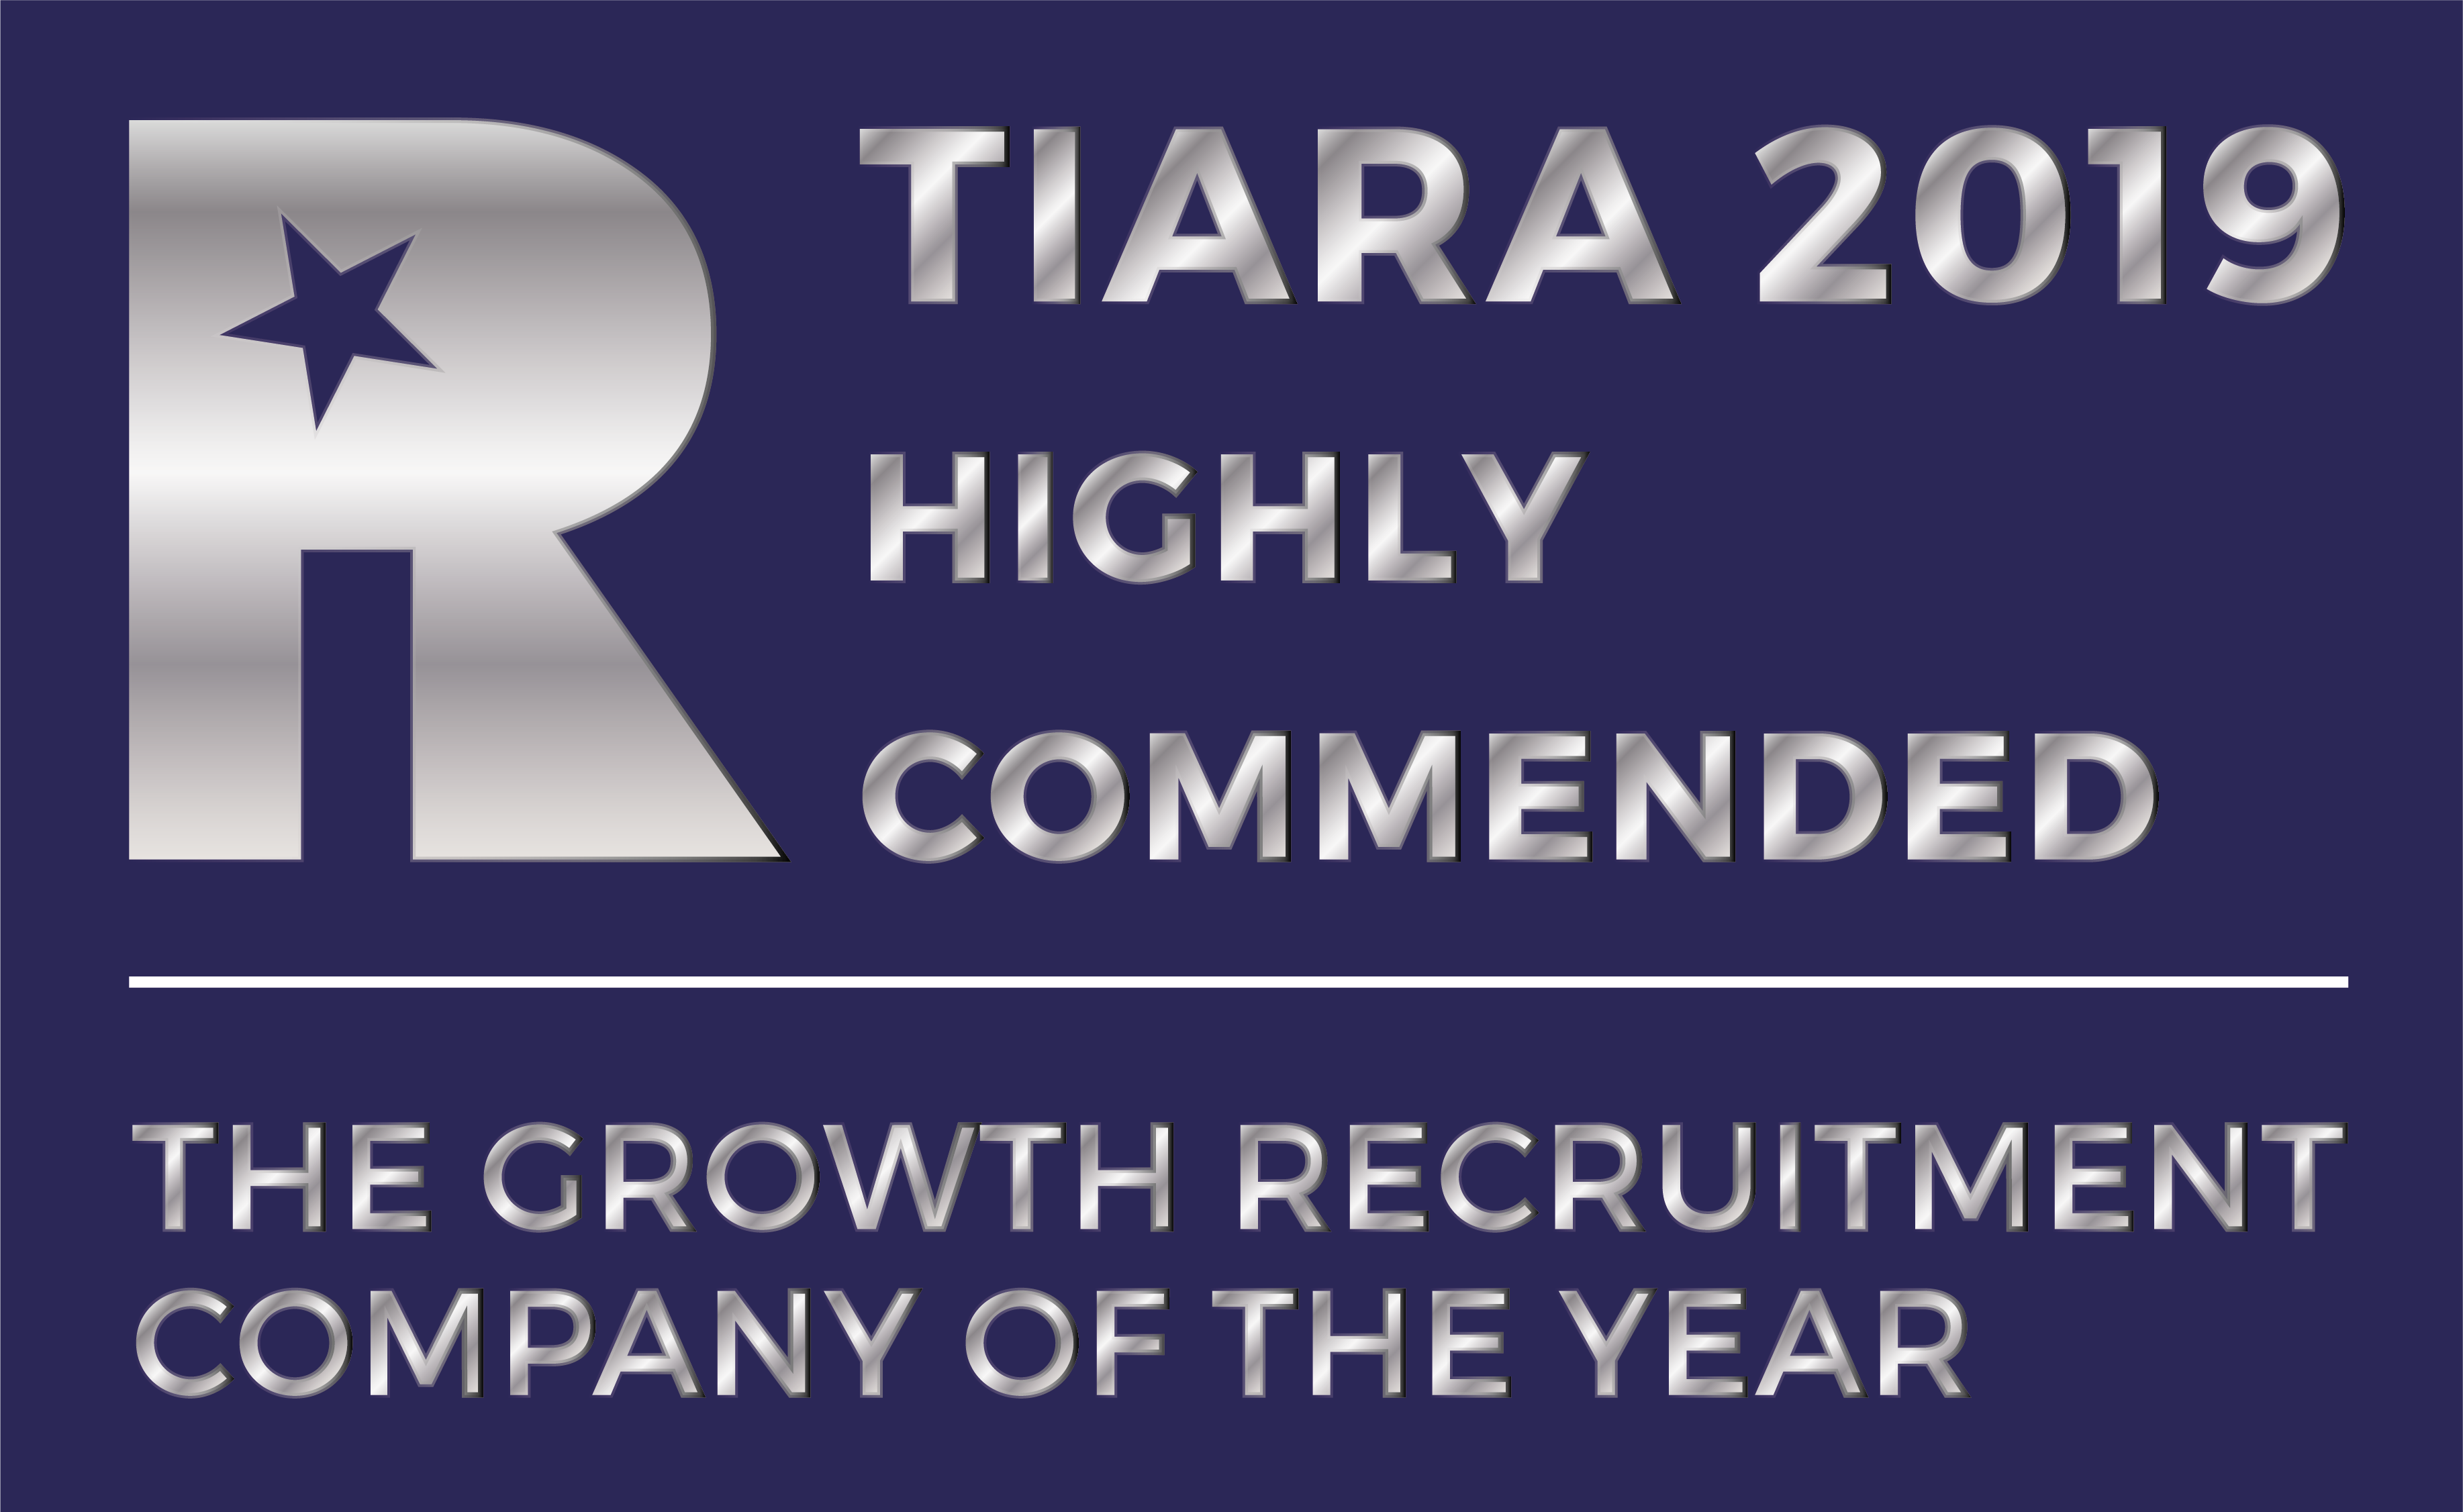 Talint International - Highly Commended Growth Recruitment Company of the Year 2019